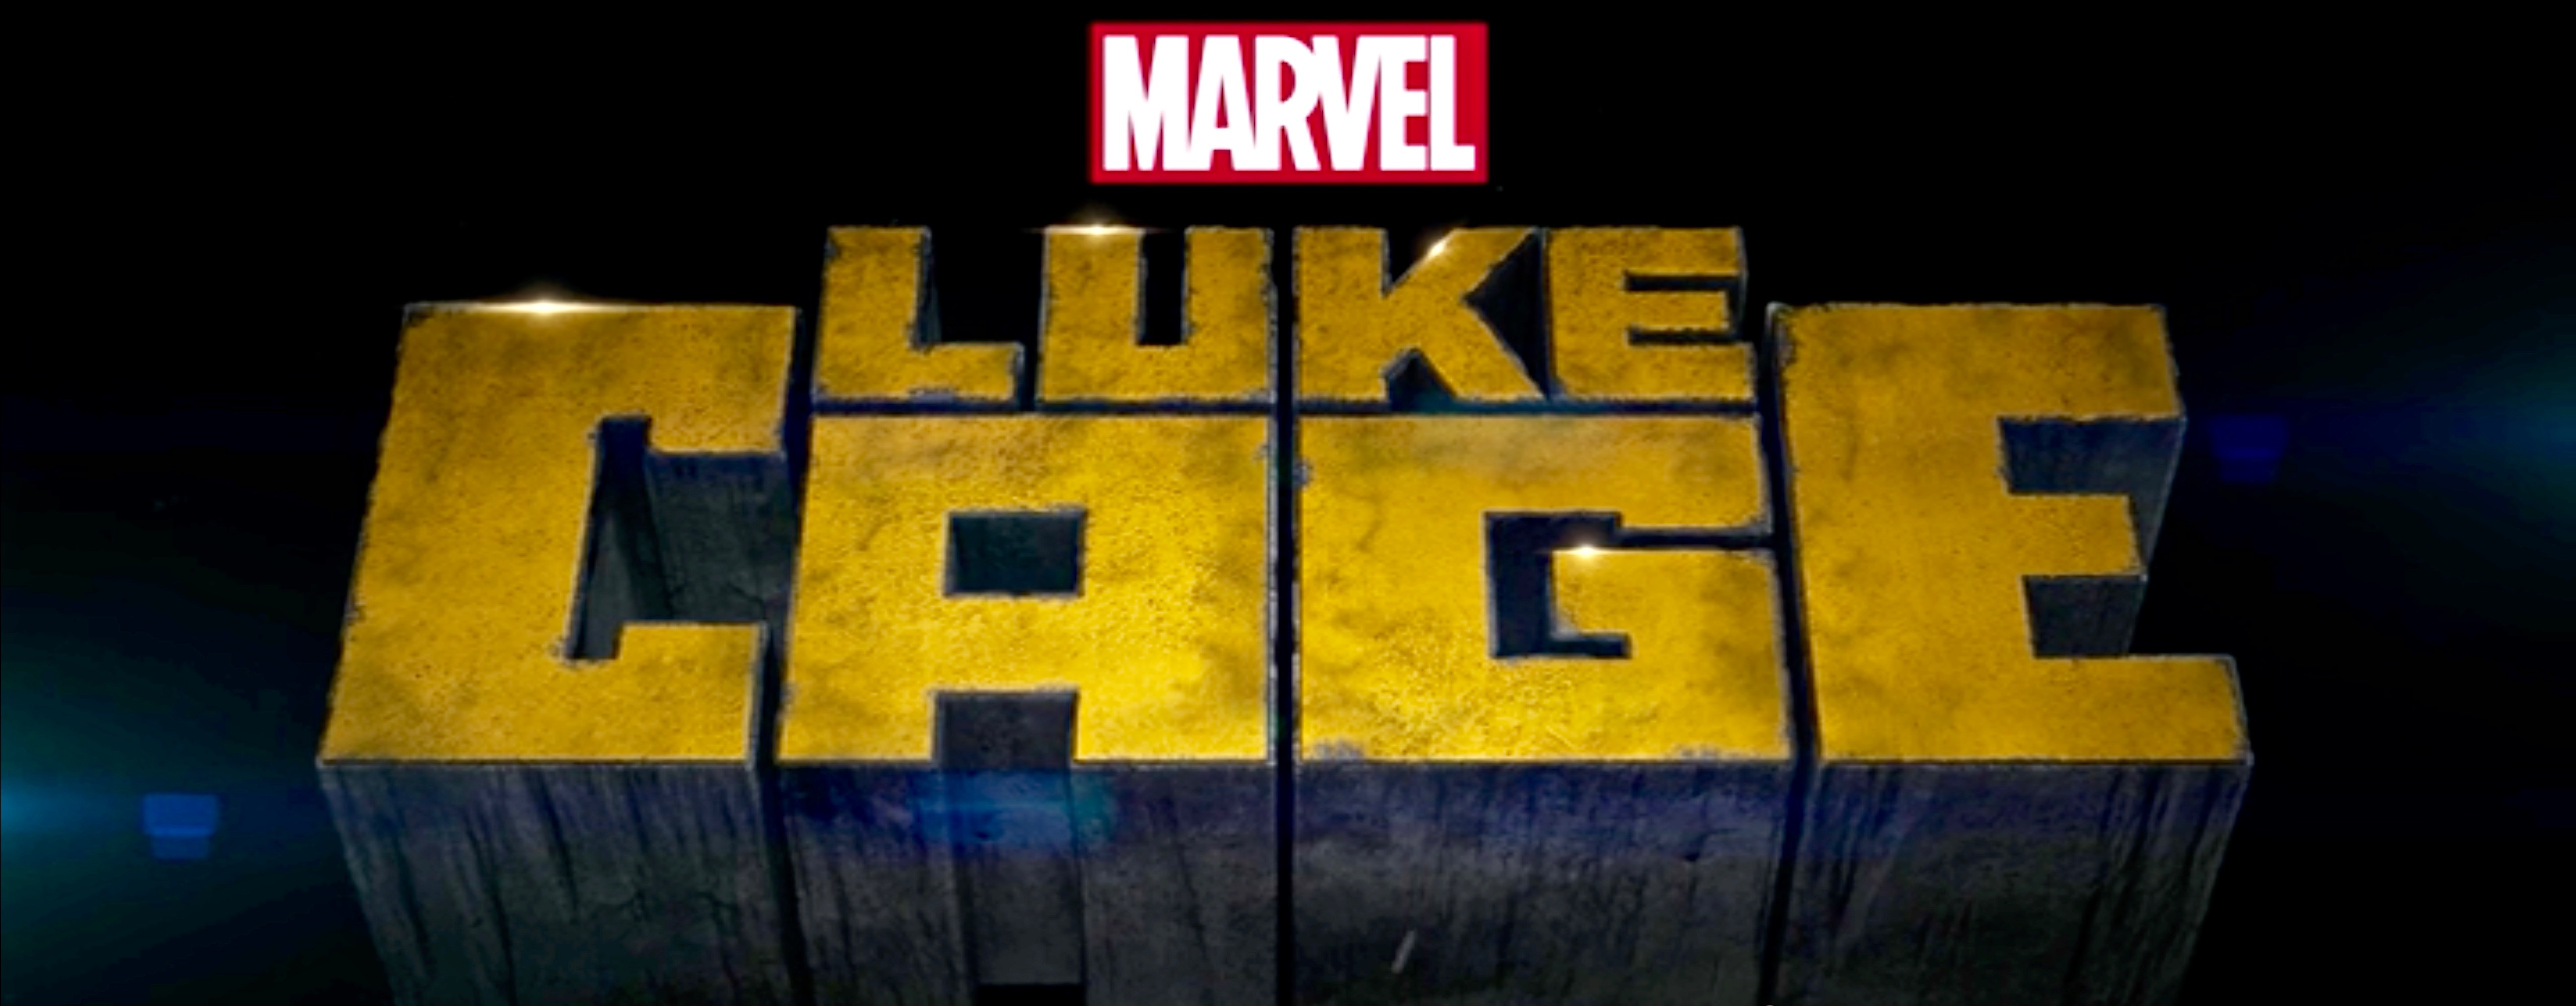 SWEET CHRISTMAS! It's Our First Luke Cage Teaser!